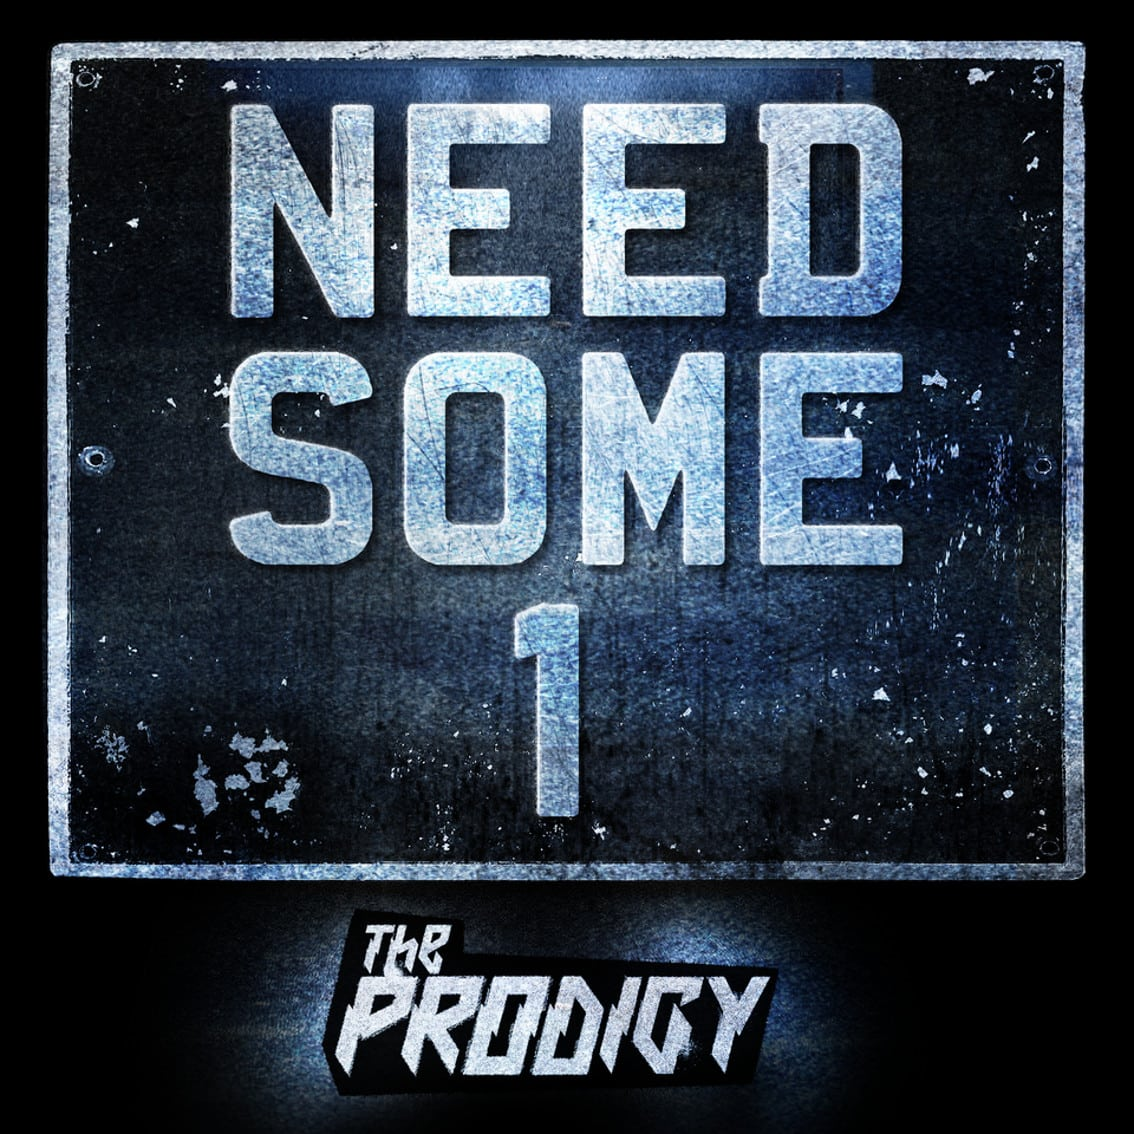 The Prodigy to release new single'Need Some1' later today - but you can already preview it here